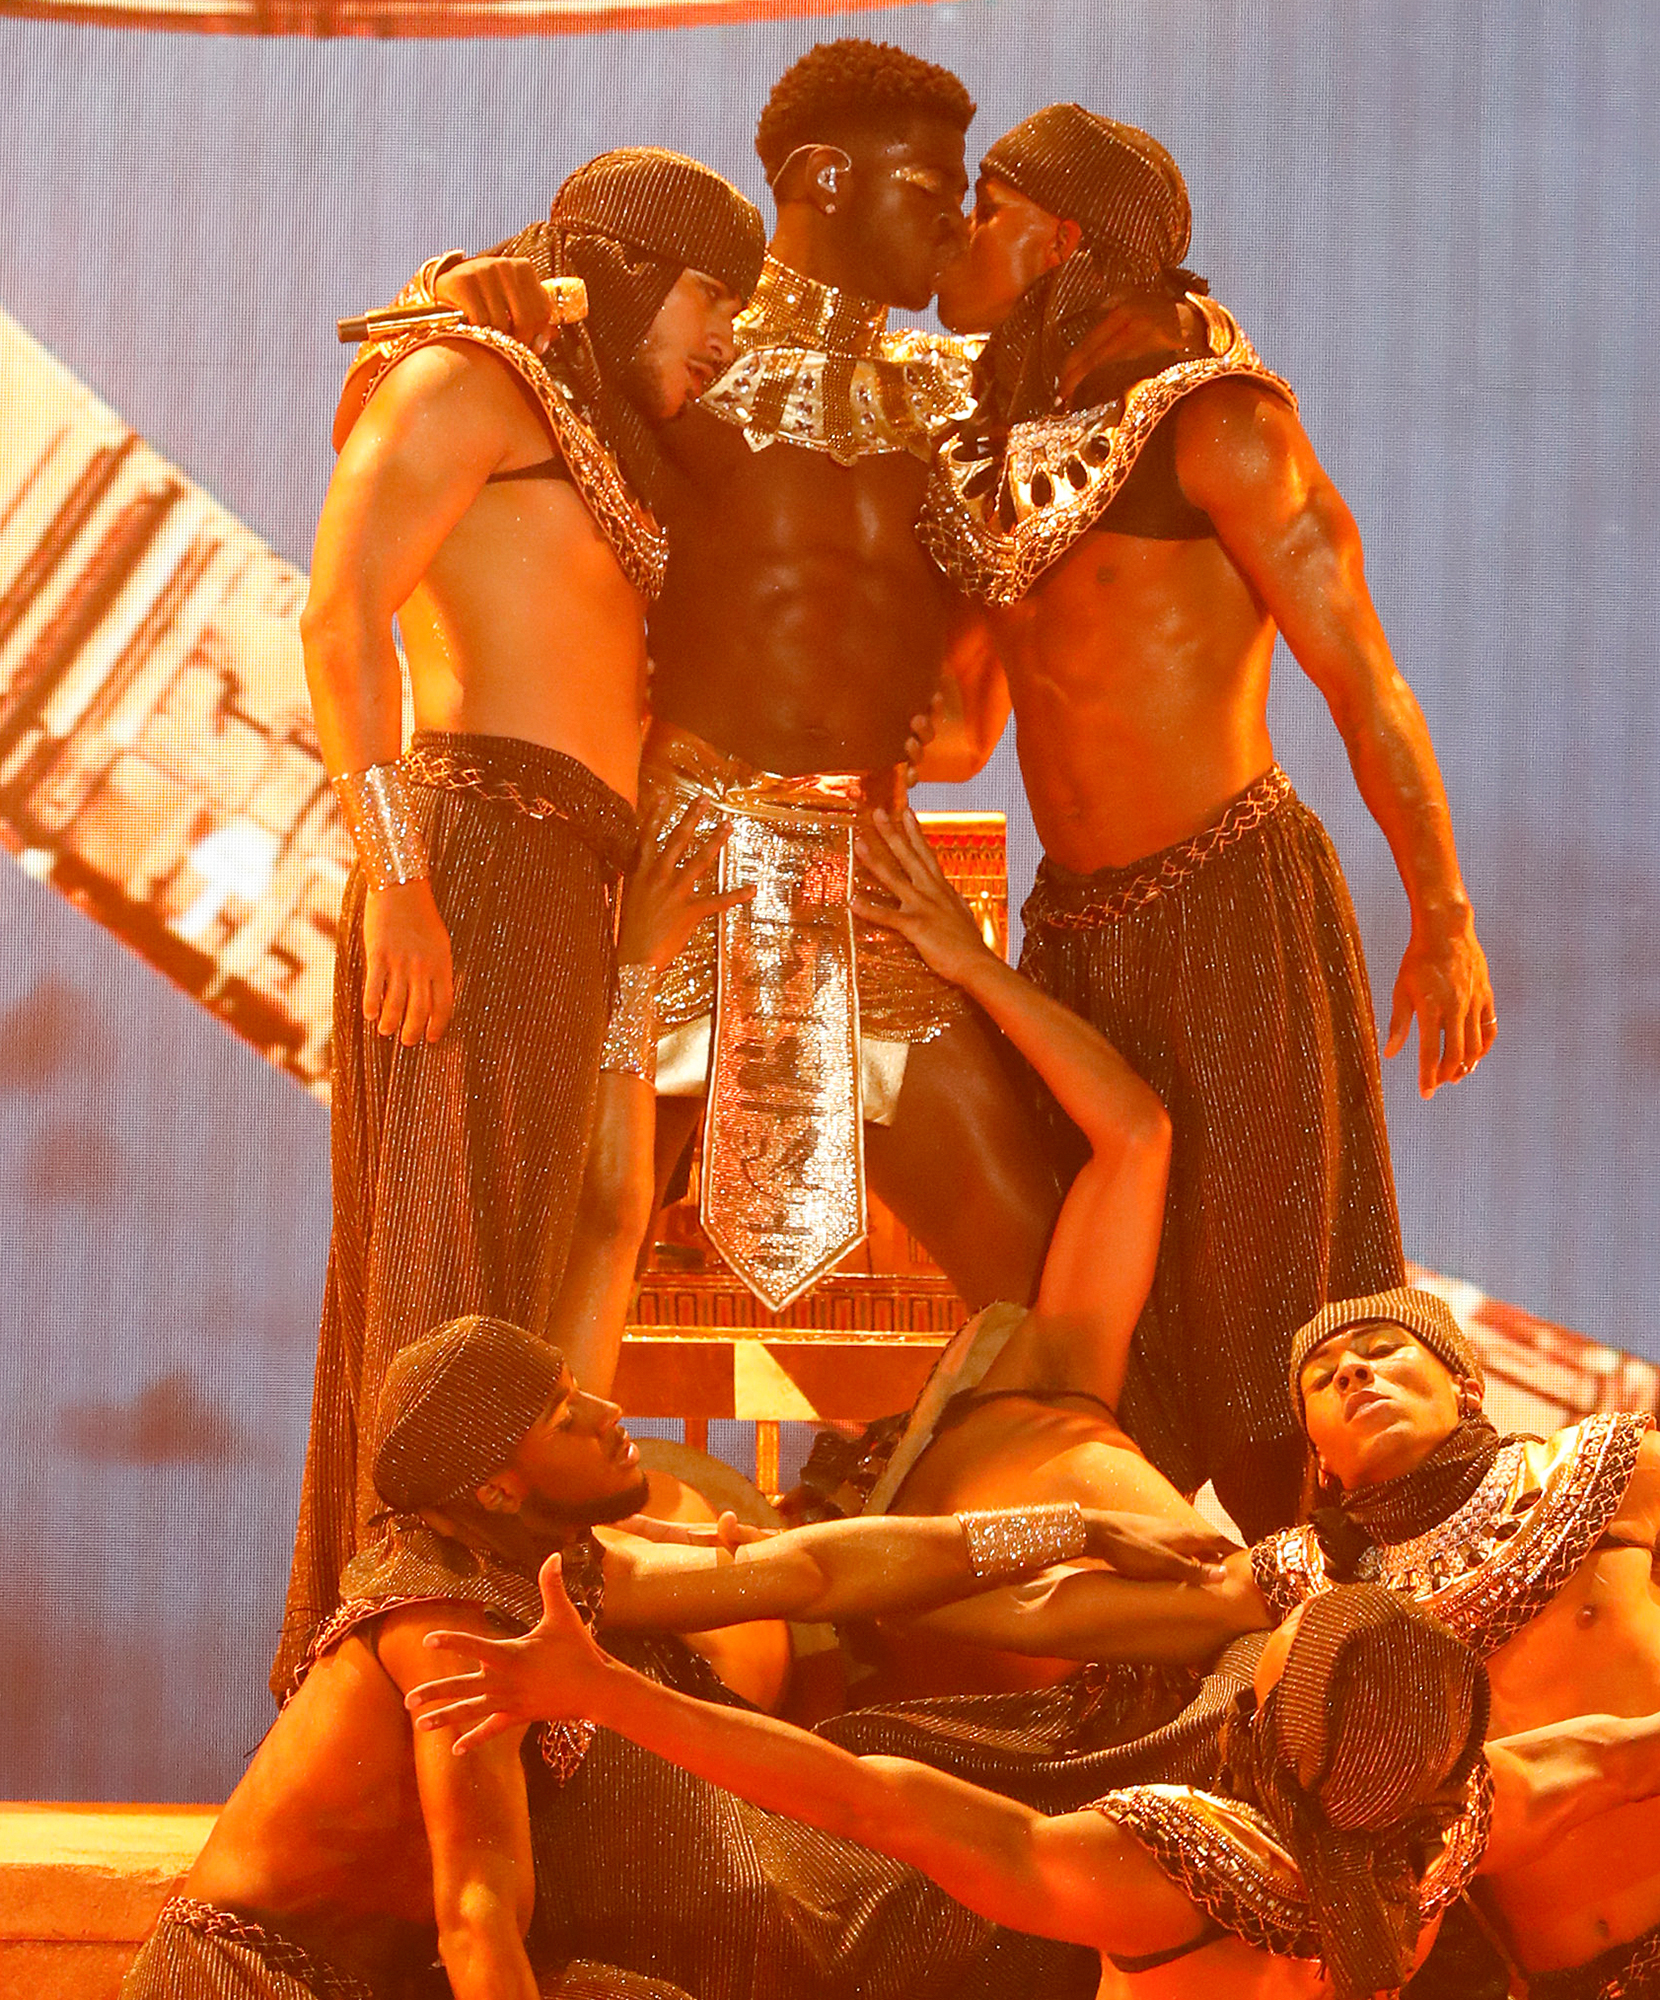 Lil Nas X kisses male dancer in fiery BET Awards performance | EW.com